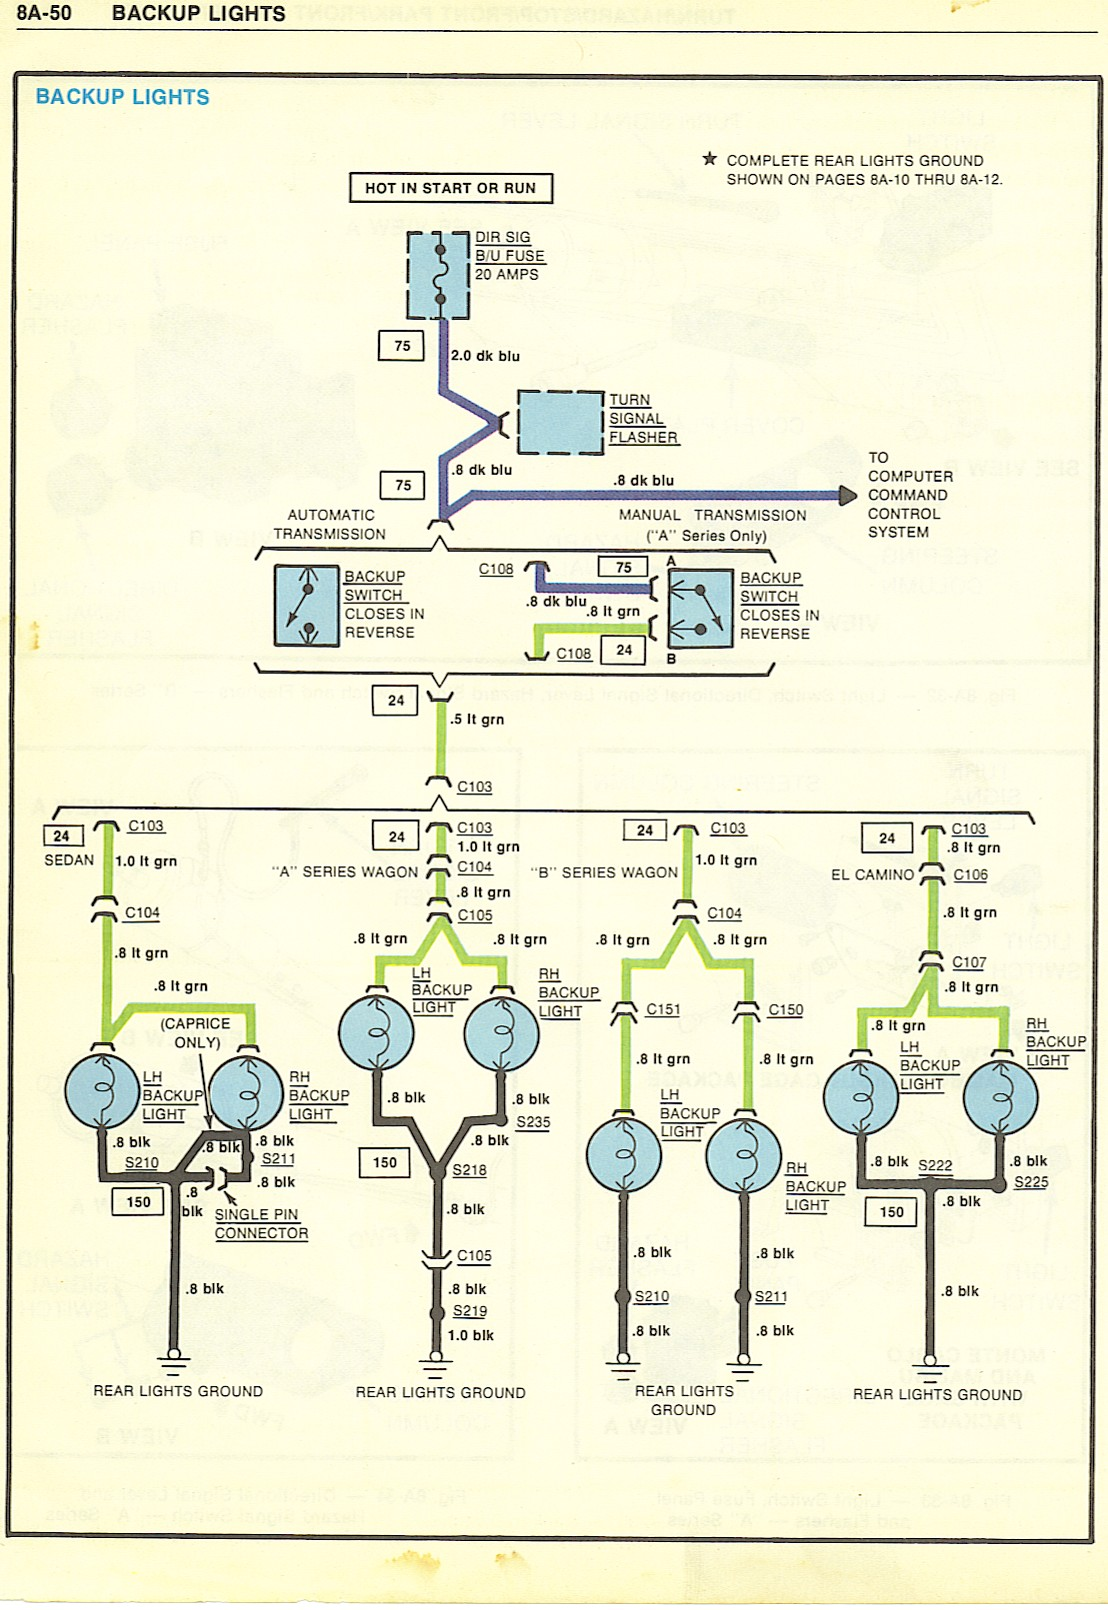 BackupLights wiring diagrams Ford Alternator Wiring Diagram at bayanpartner.co